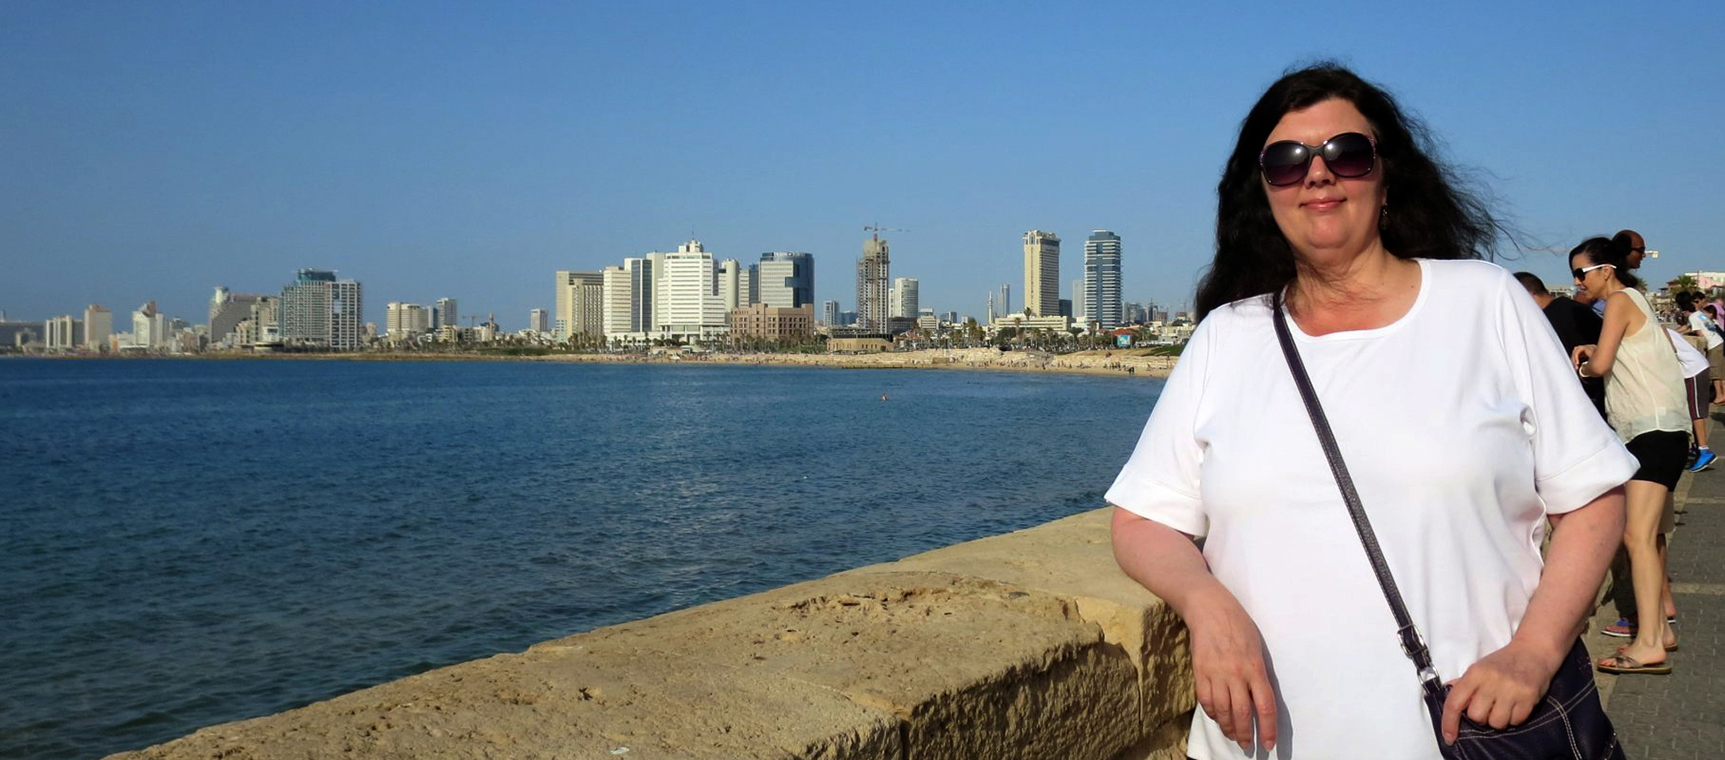 Lorie Kennerly poses by the Mediterranean Sea in Israel.